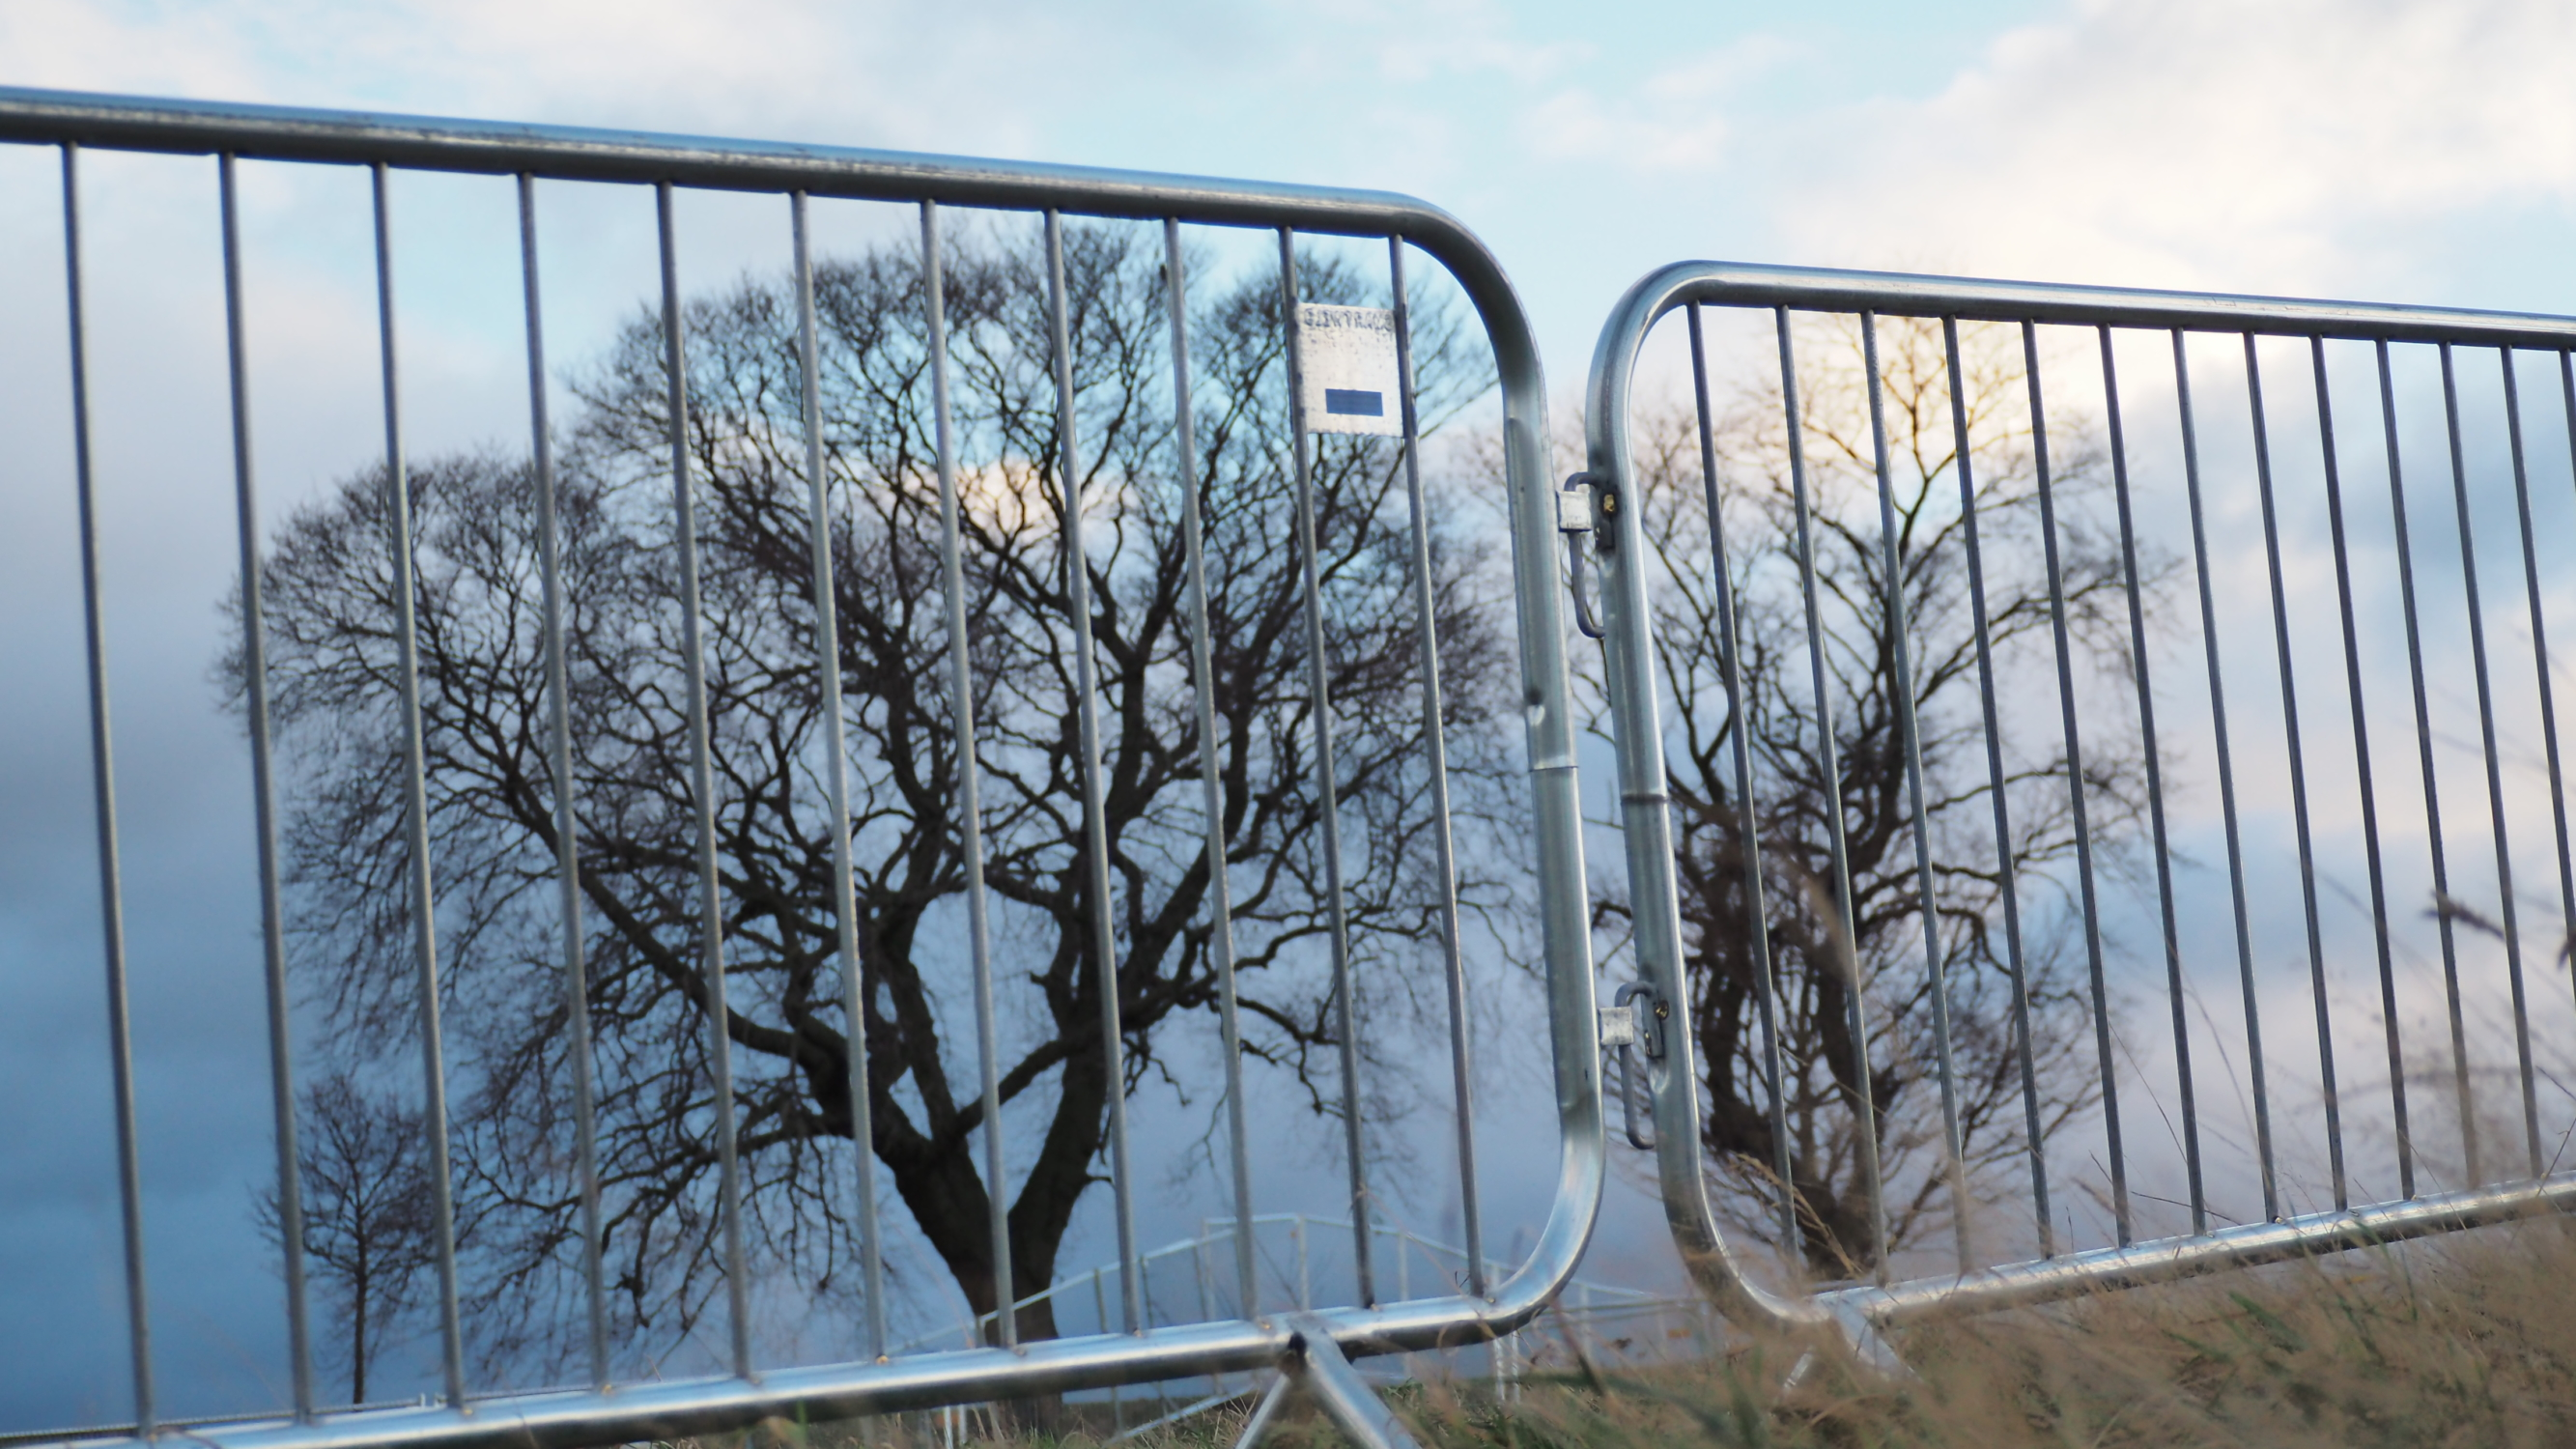 harris fencing barriers in front of trees calton hill Edinburgh Scotland